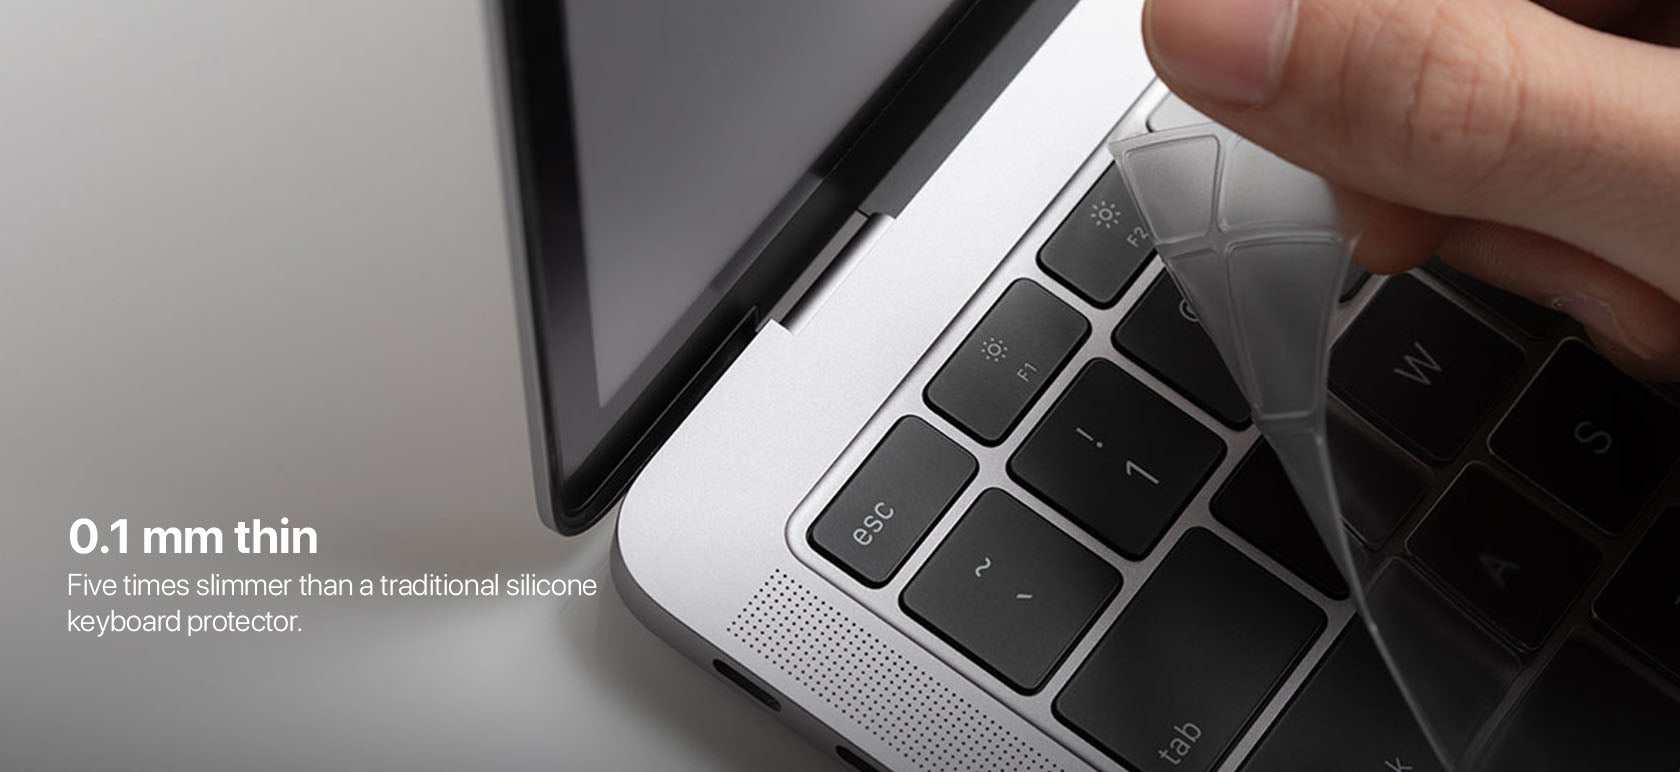 0.1 mm thin Five times slimmer than a traditional silicone keyboard protector.